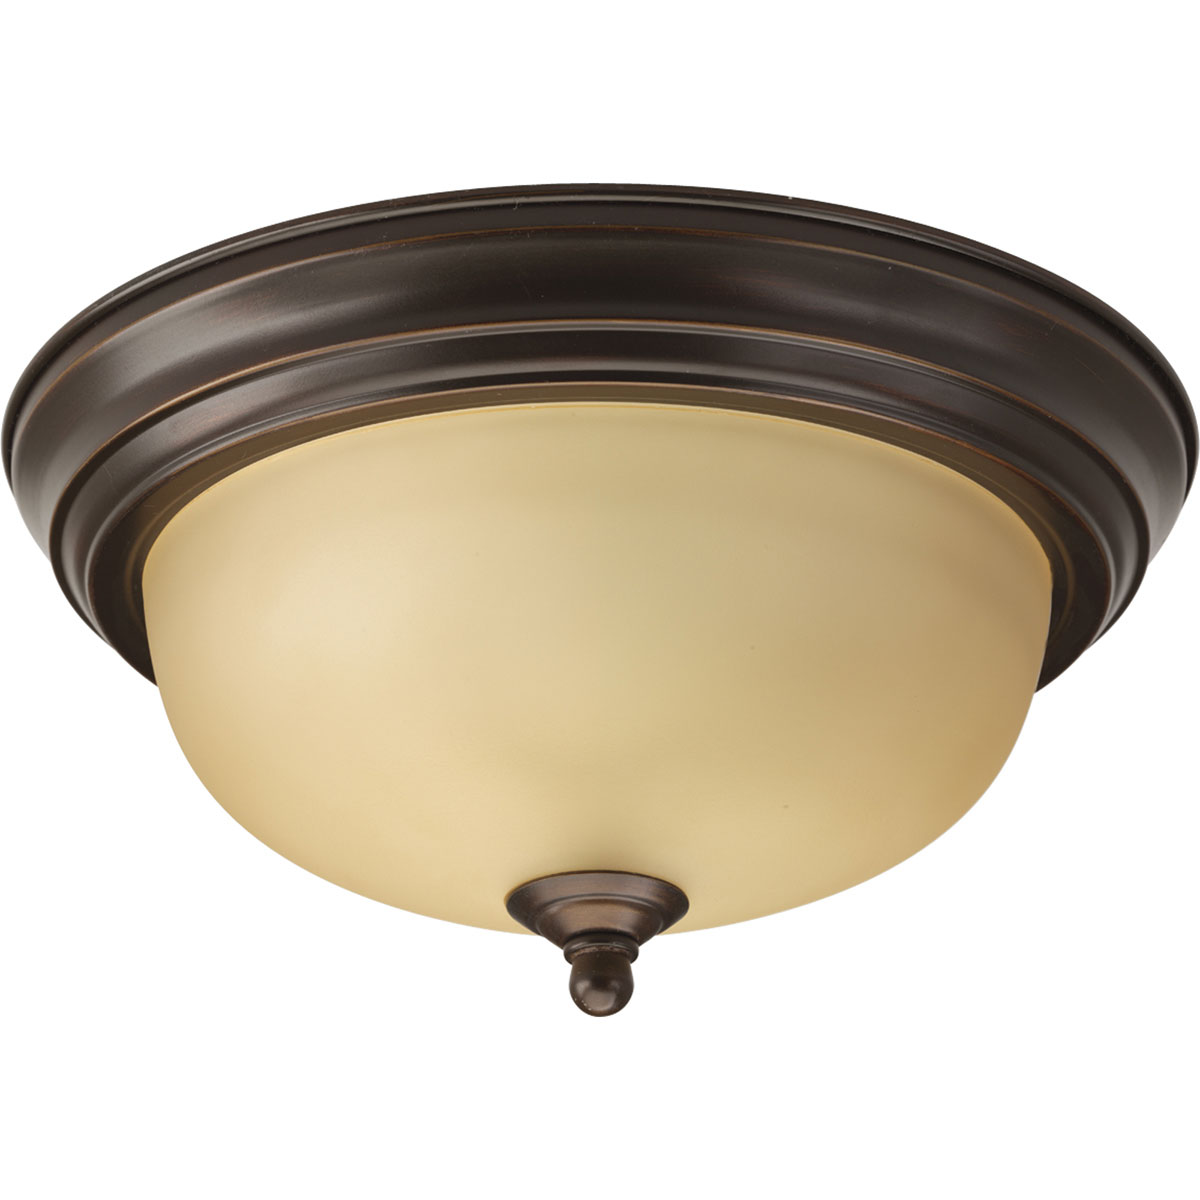 Progress Lighting (P3924-20T) Melon 1 Light Flush Mount in Antique Bronze